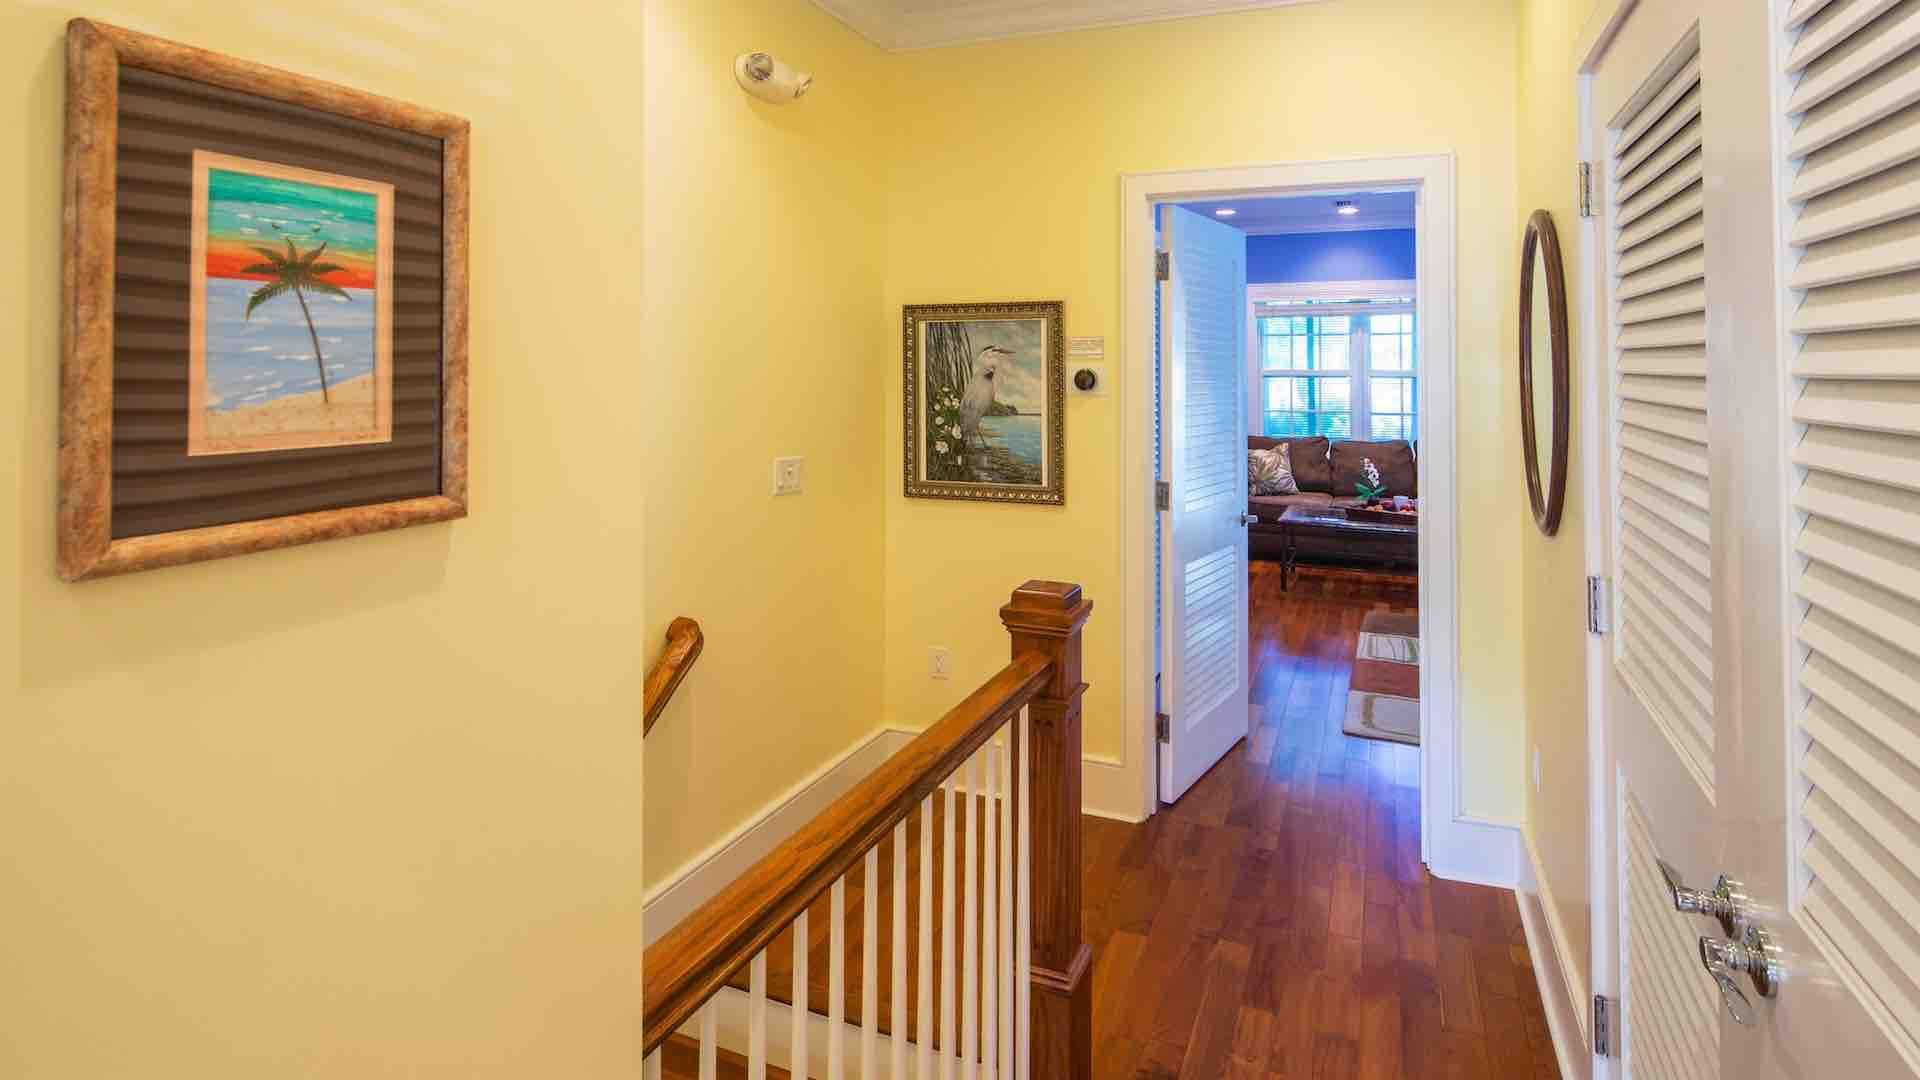 The fifth and sixth bedrooms are located upstairs...